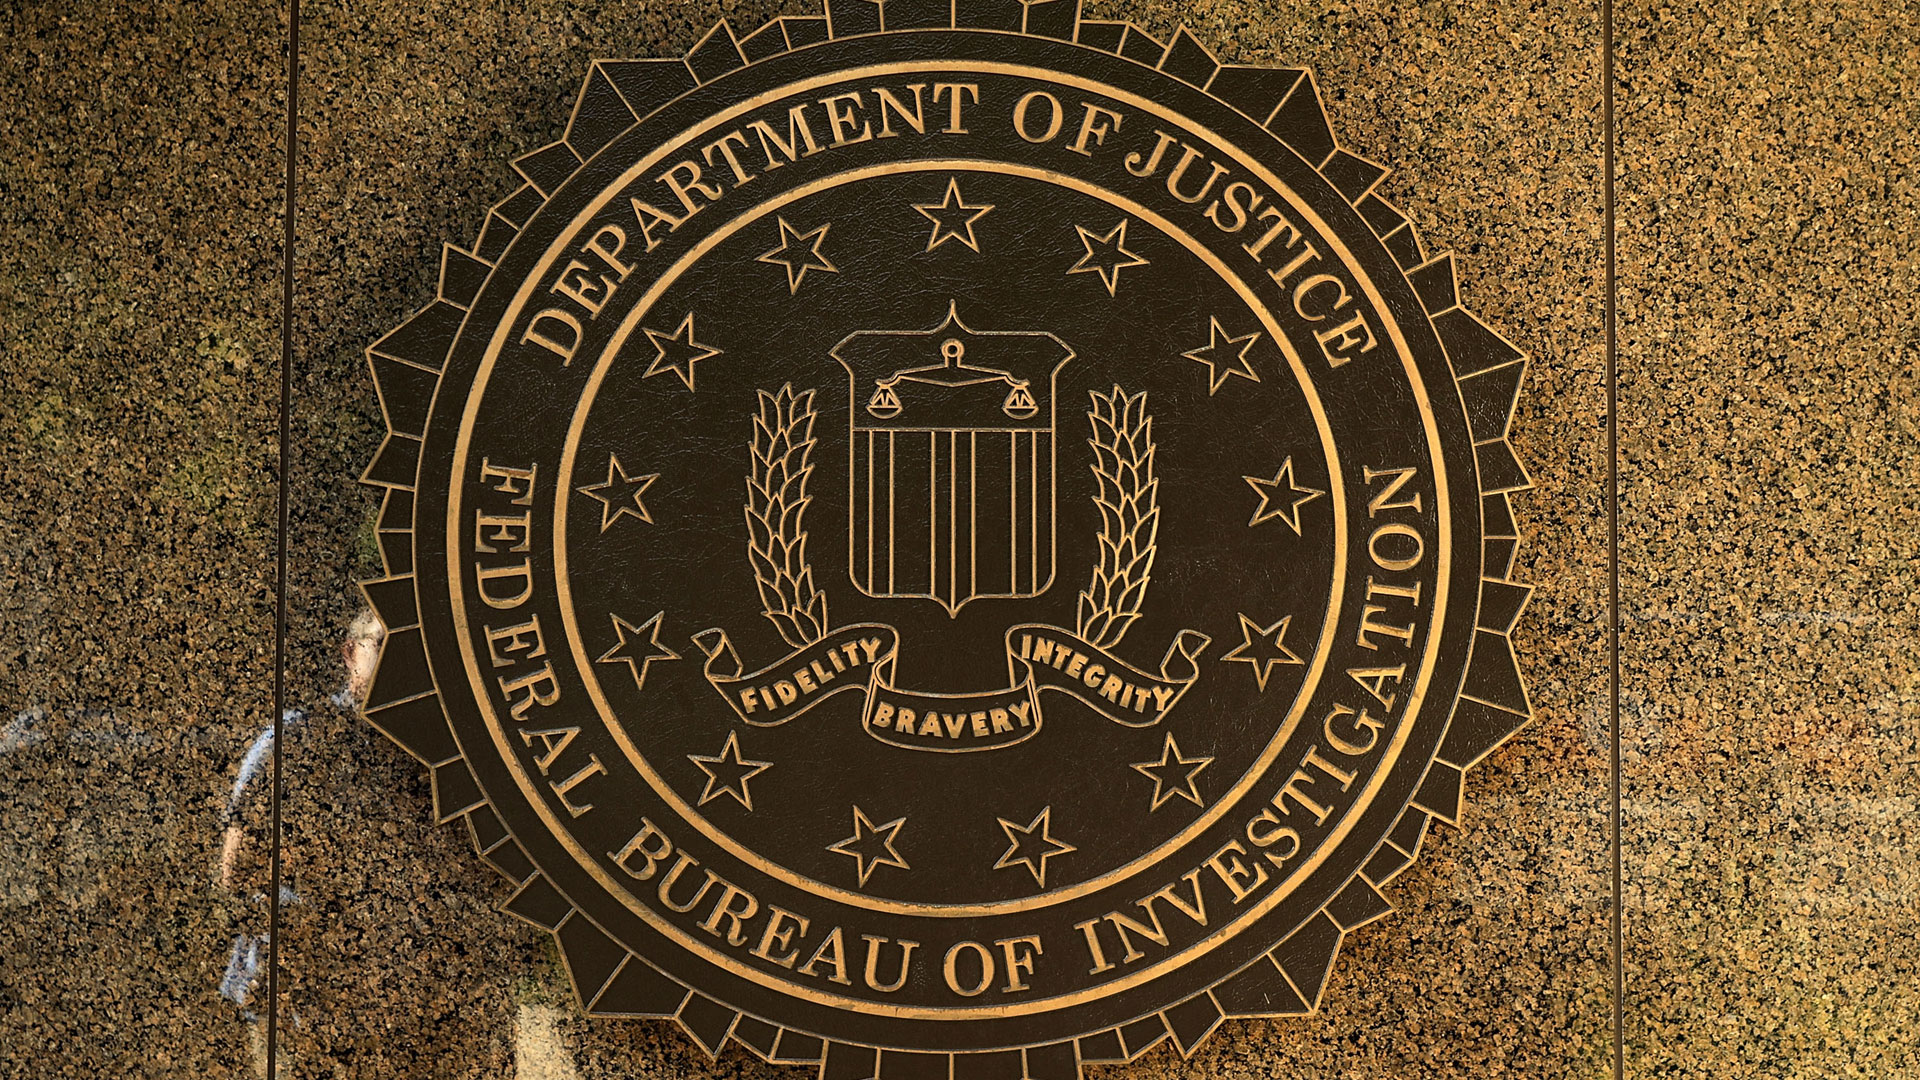 The seal of the Federal Bureau of Investigation hangs on the outside of the bureau's Edgar J. Hoover Building in Washington, D.C. (Photo by Chip Somodevilla/Getty Images)